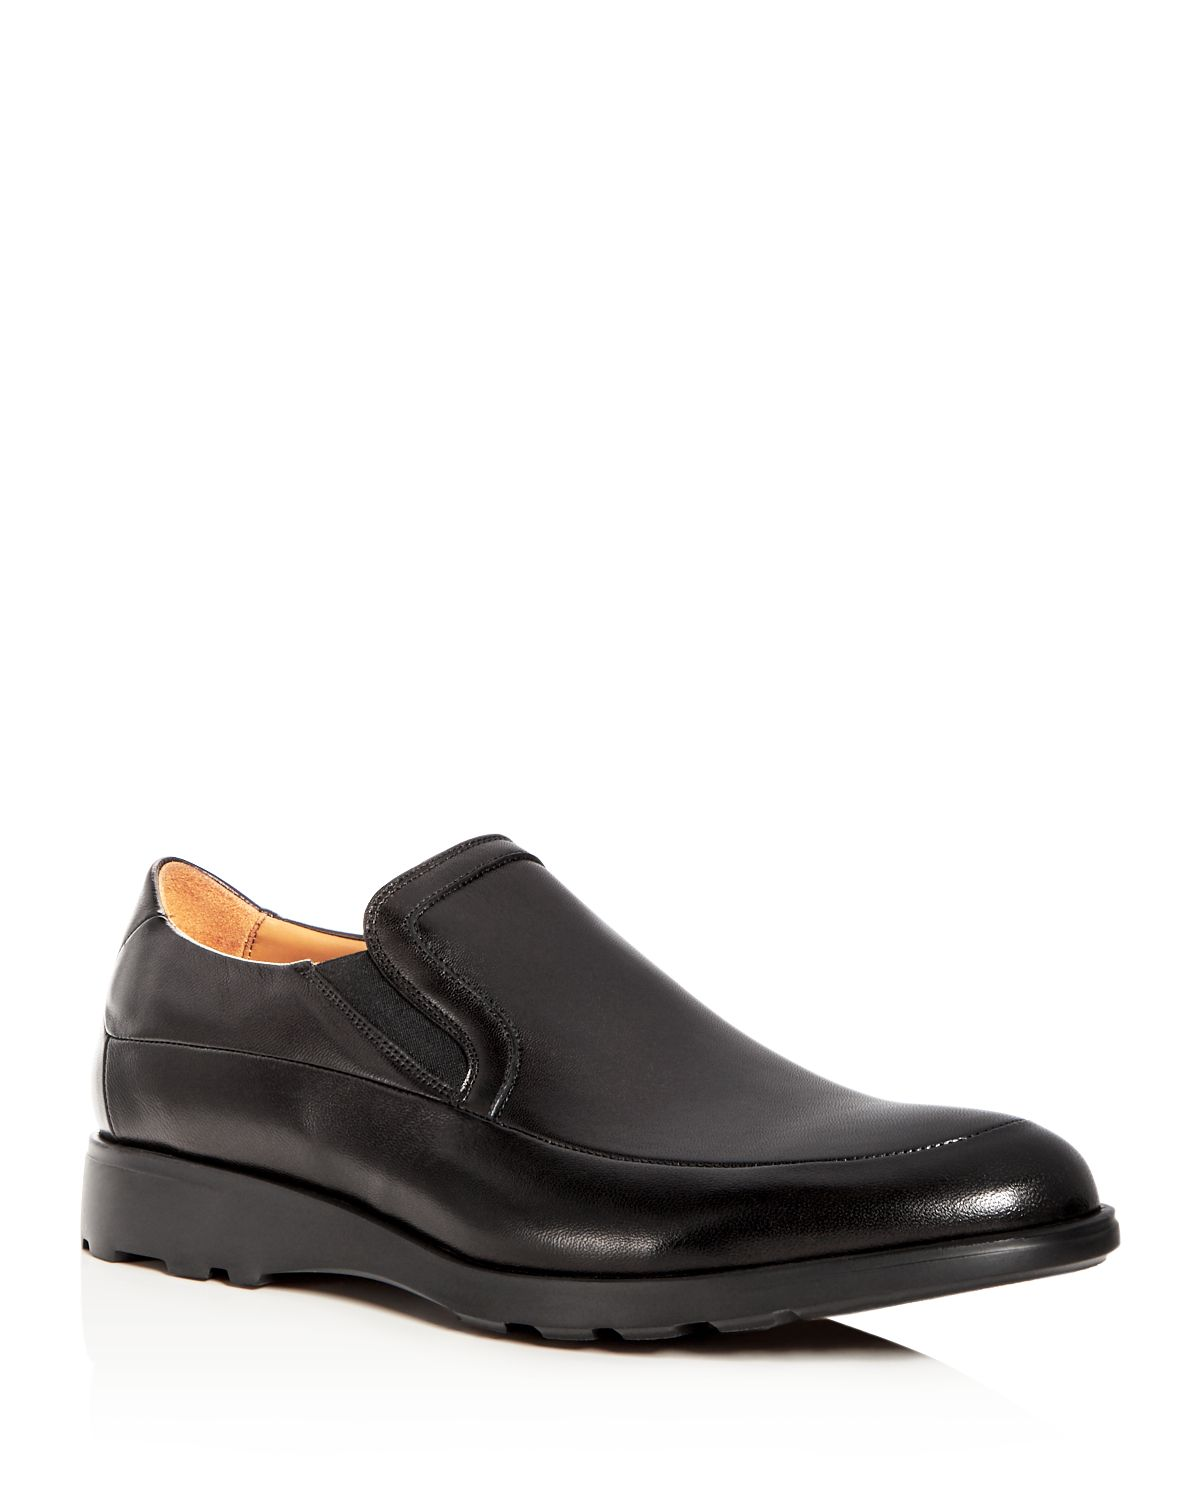 Bruno MagliMen's Vegas Leather Apron Toe Loafers